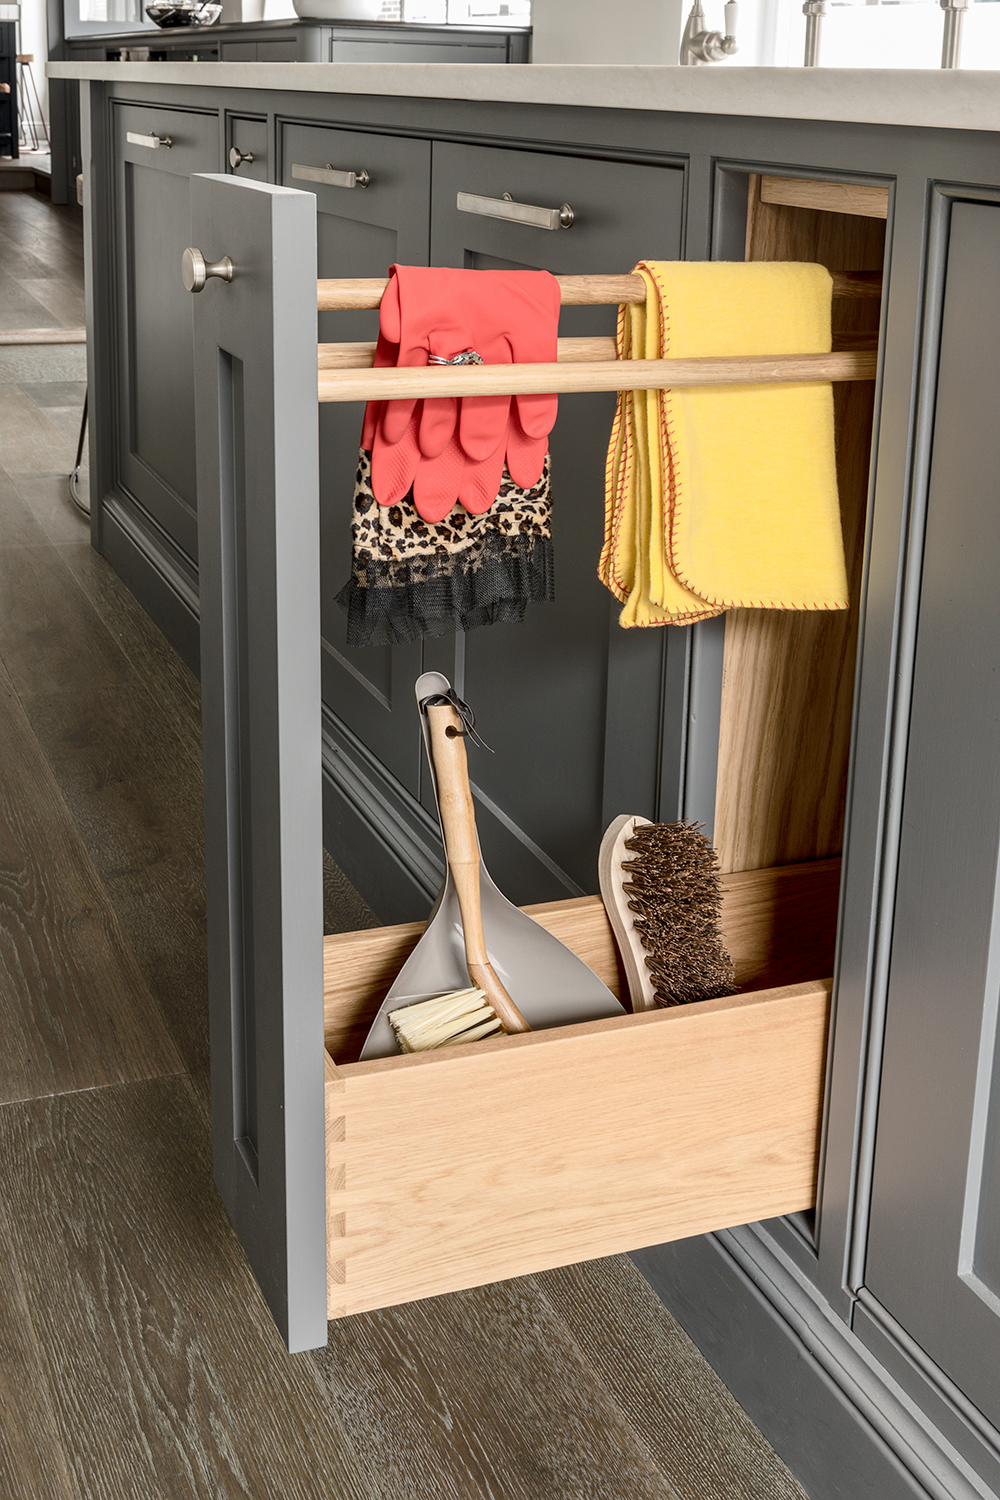 Grey kitchen island with an open pull out dovetailed cupboard for cleaning equipment made of solid oak with three rails for hanging cloths.